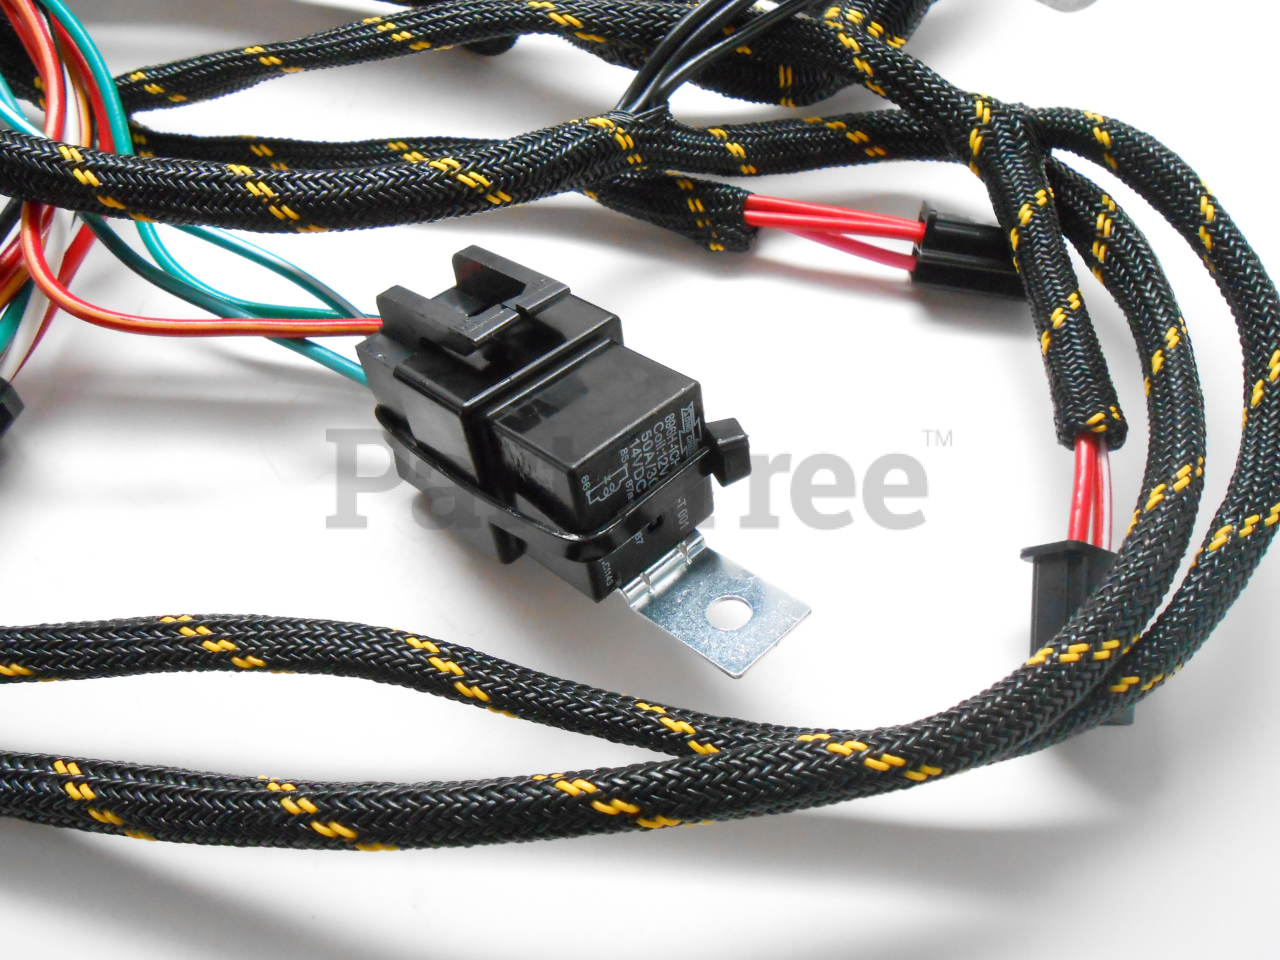 scag part 483053 wire harness stc partstree